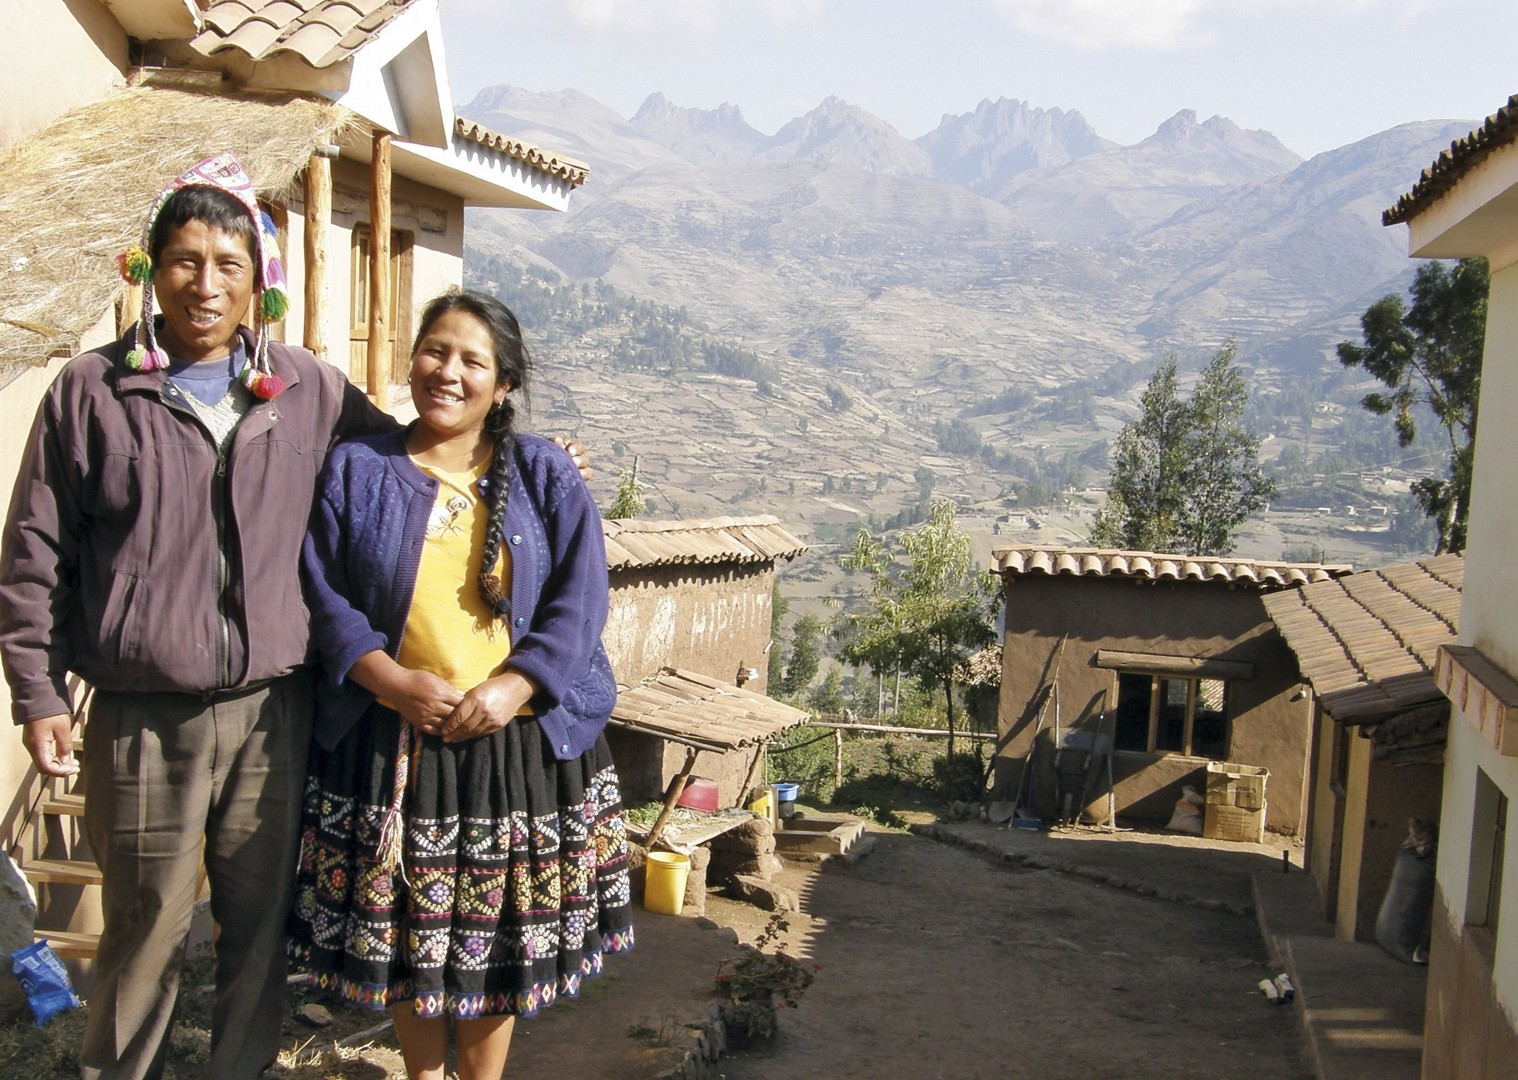 Meeting People.jpg - Inca Trails in Peru - Meet the People Tours